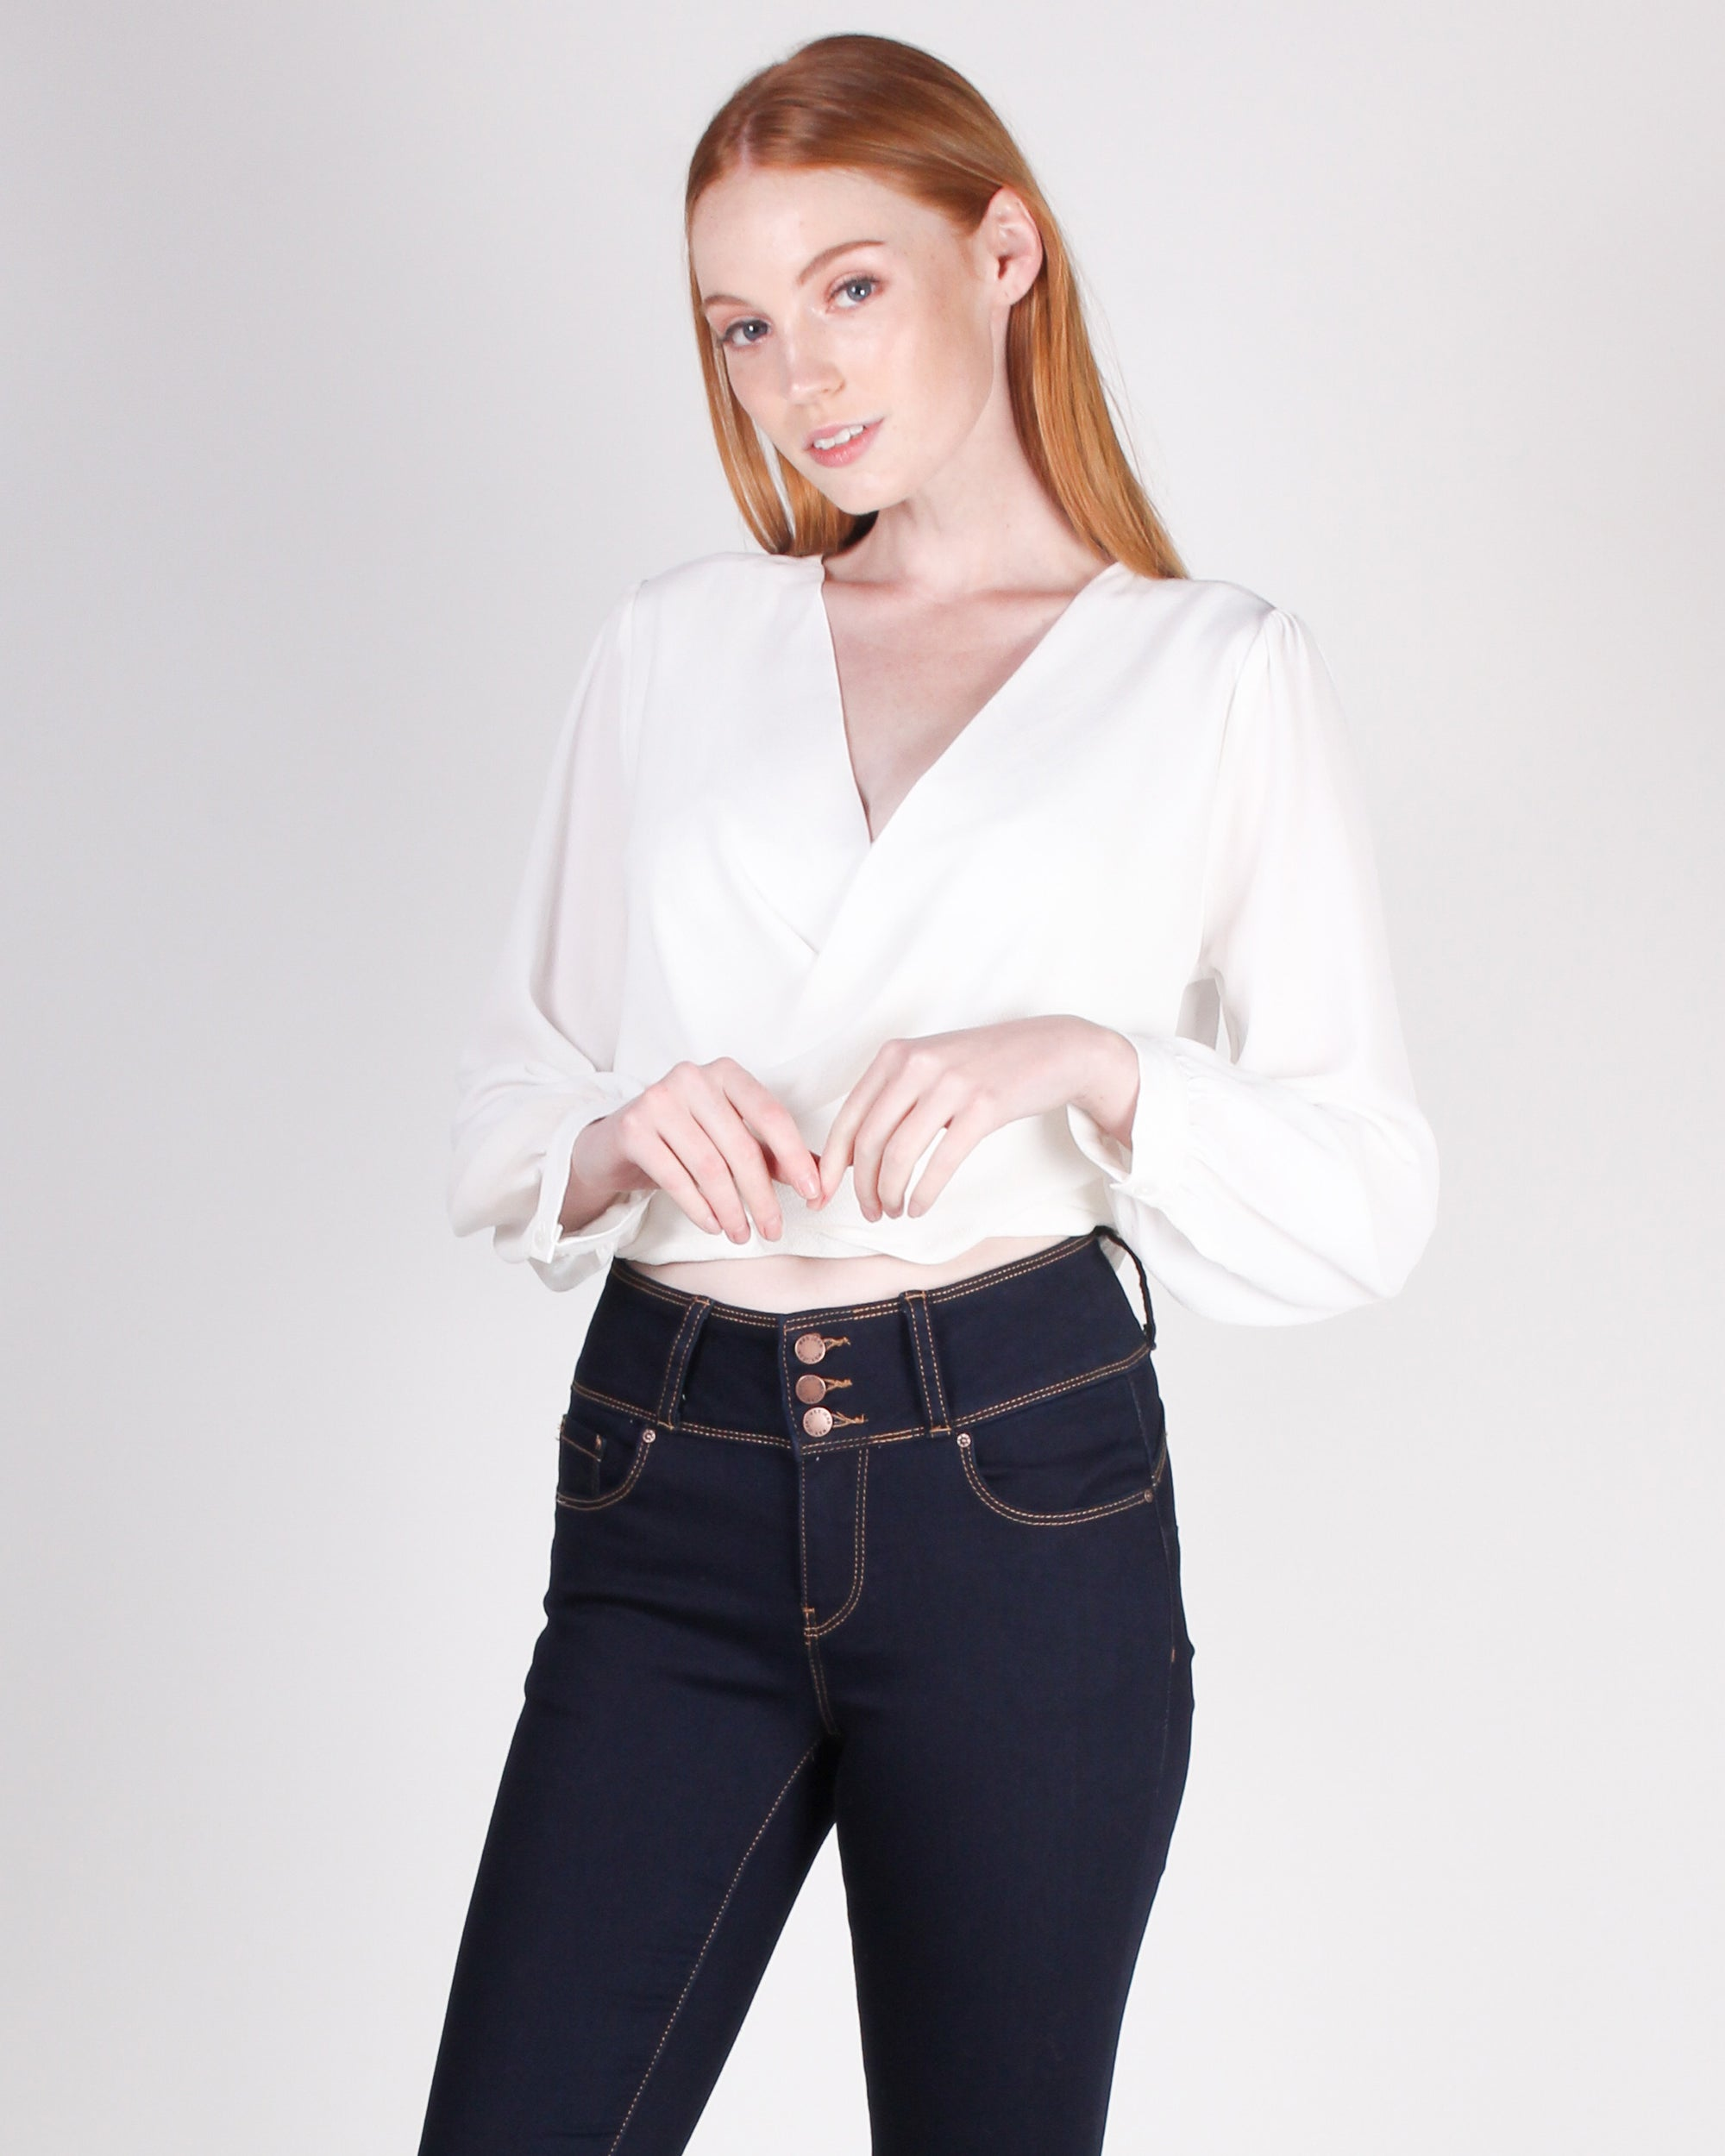 Fashion Q Shop Q Be You, Unapologetically Blouse Top (Off White) DN1359